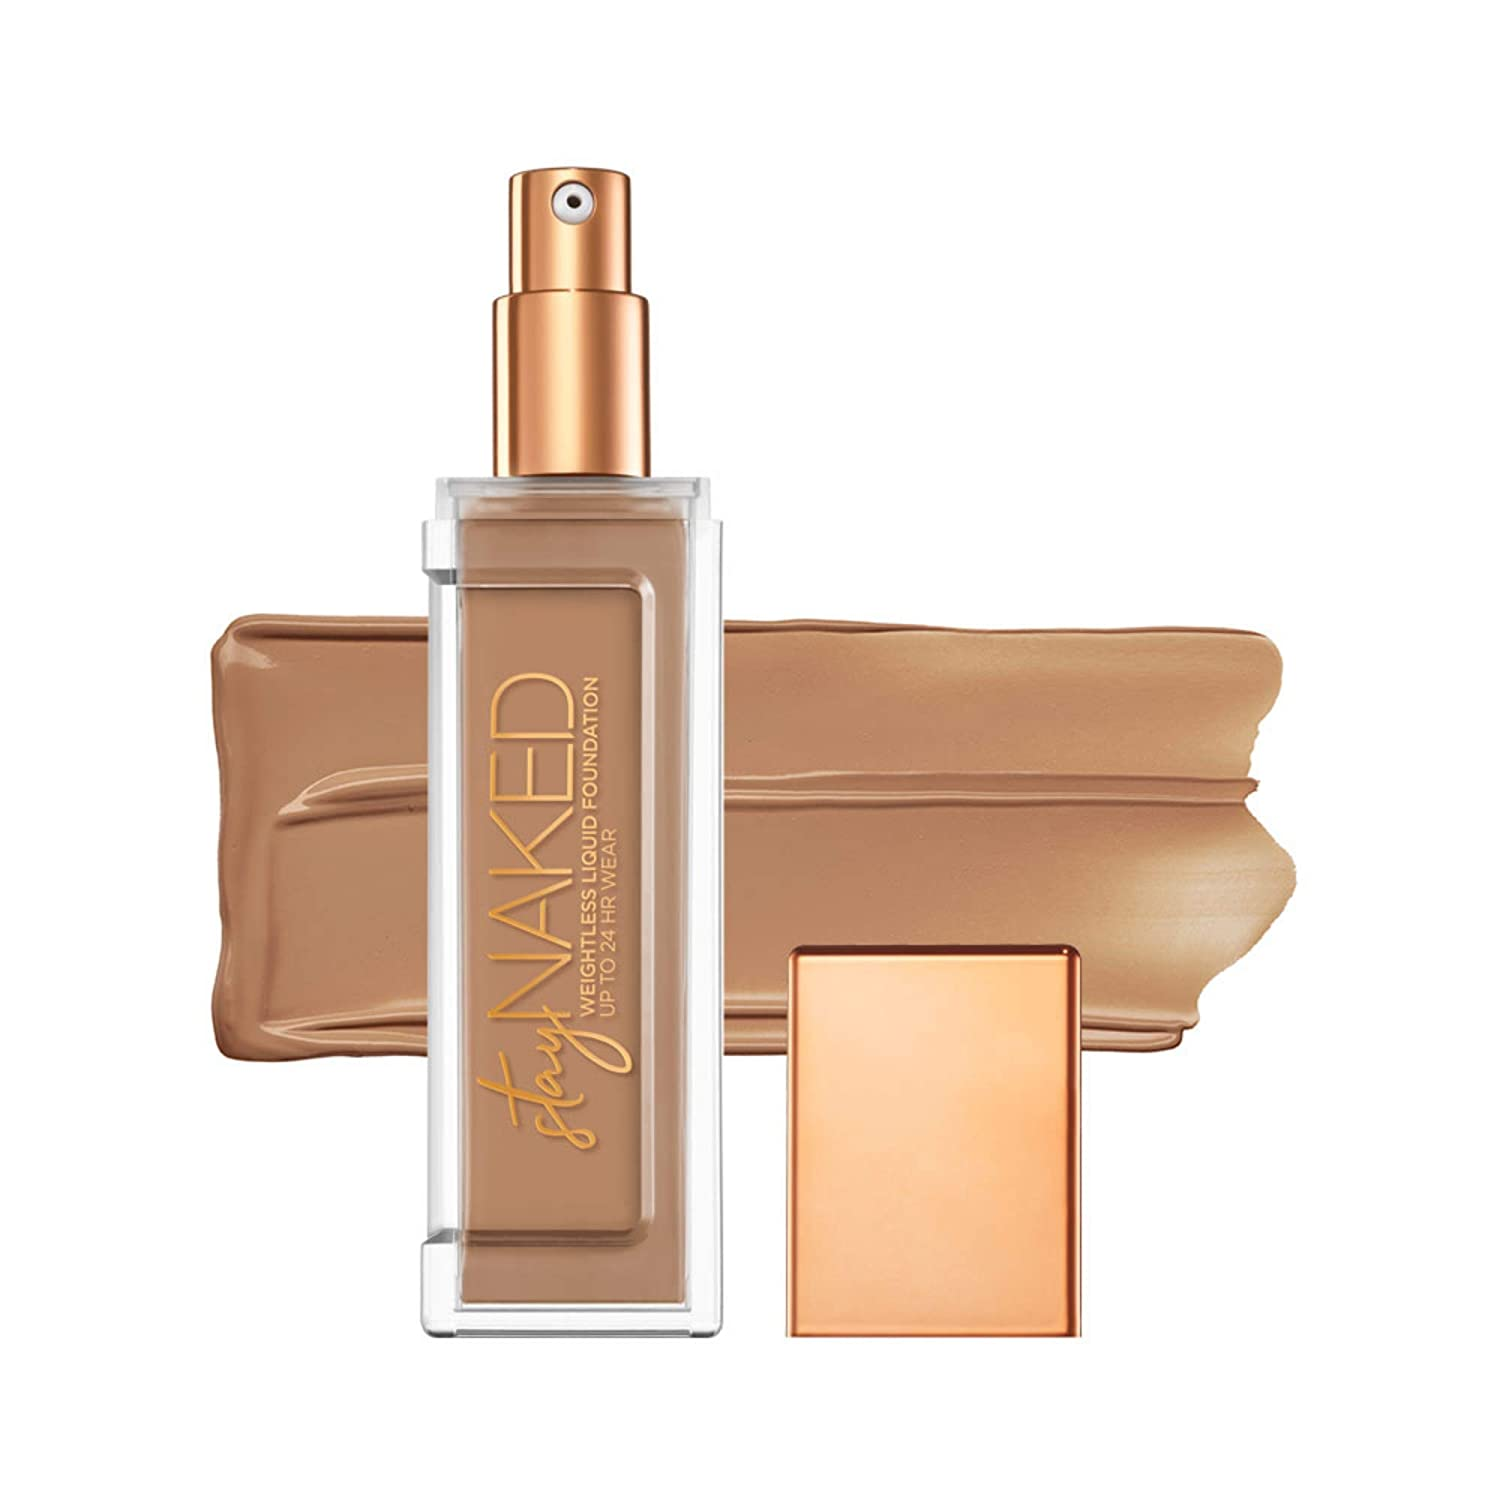 URBAN DECAY Stay Naked Weightless Foundation - USA Center